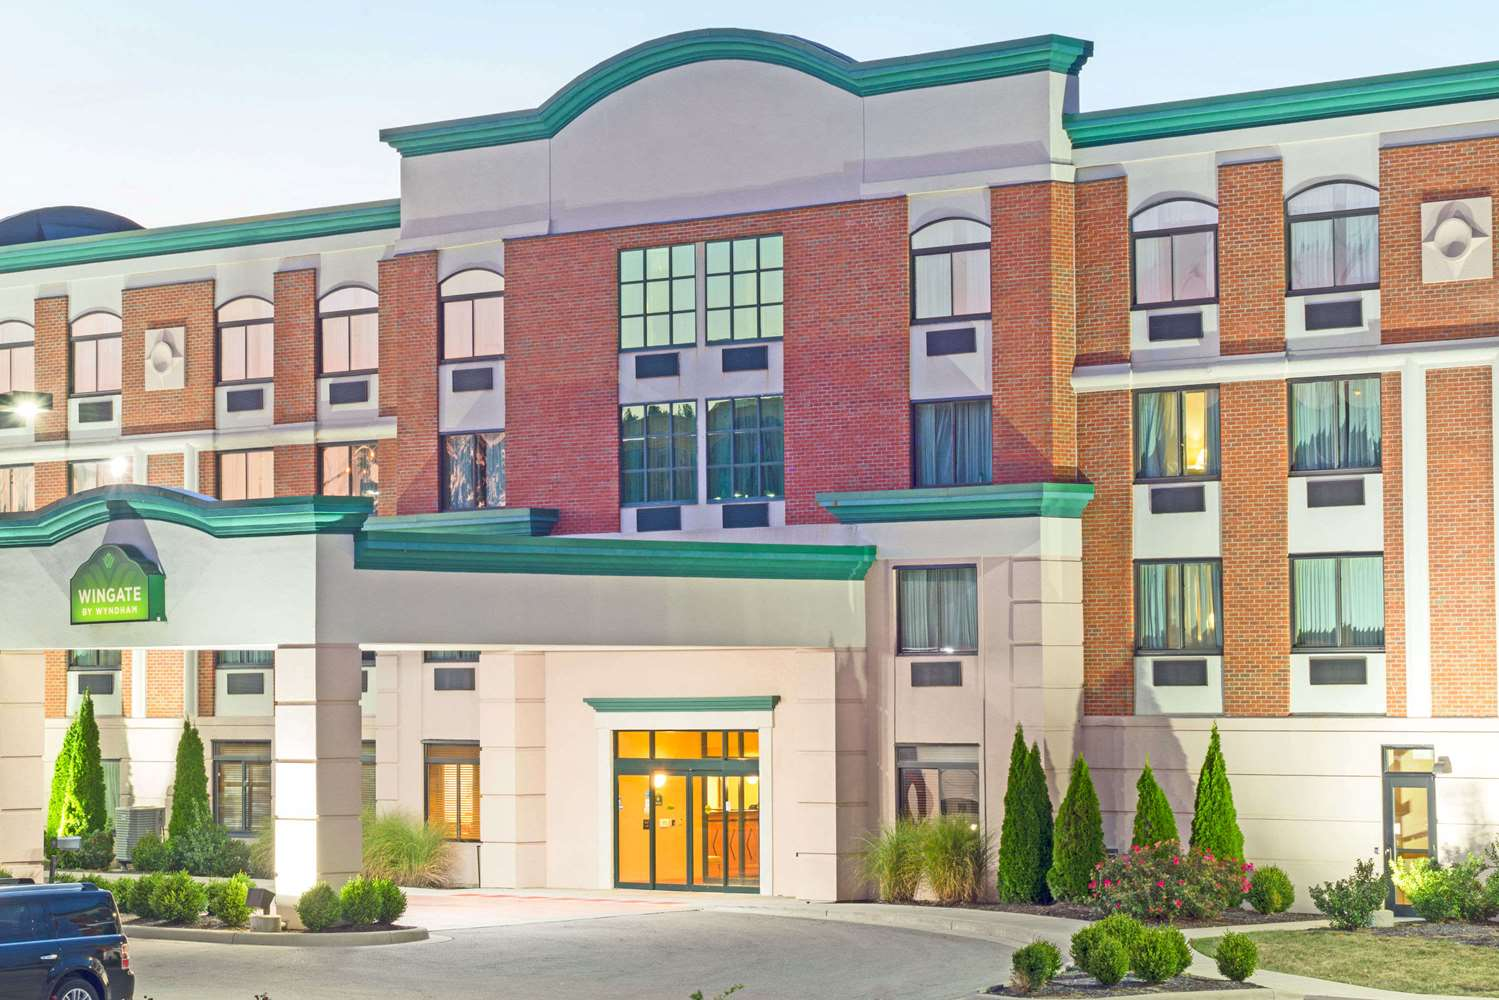 Exterior view - Wingate by Wyndham Hotel Fairborn